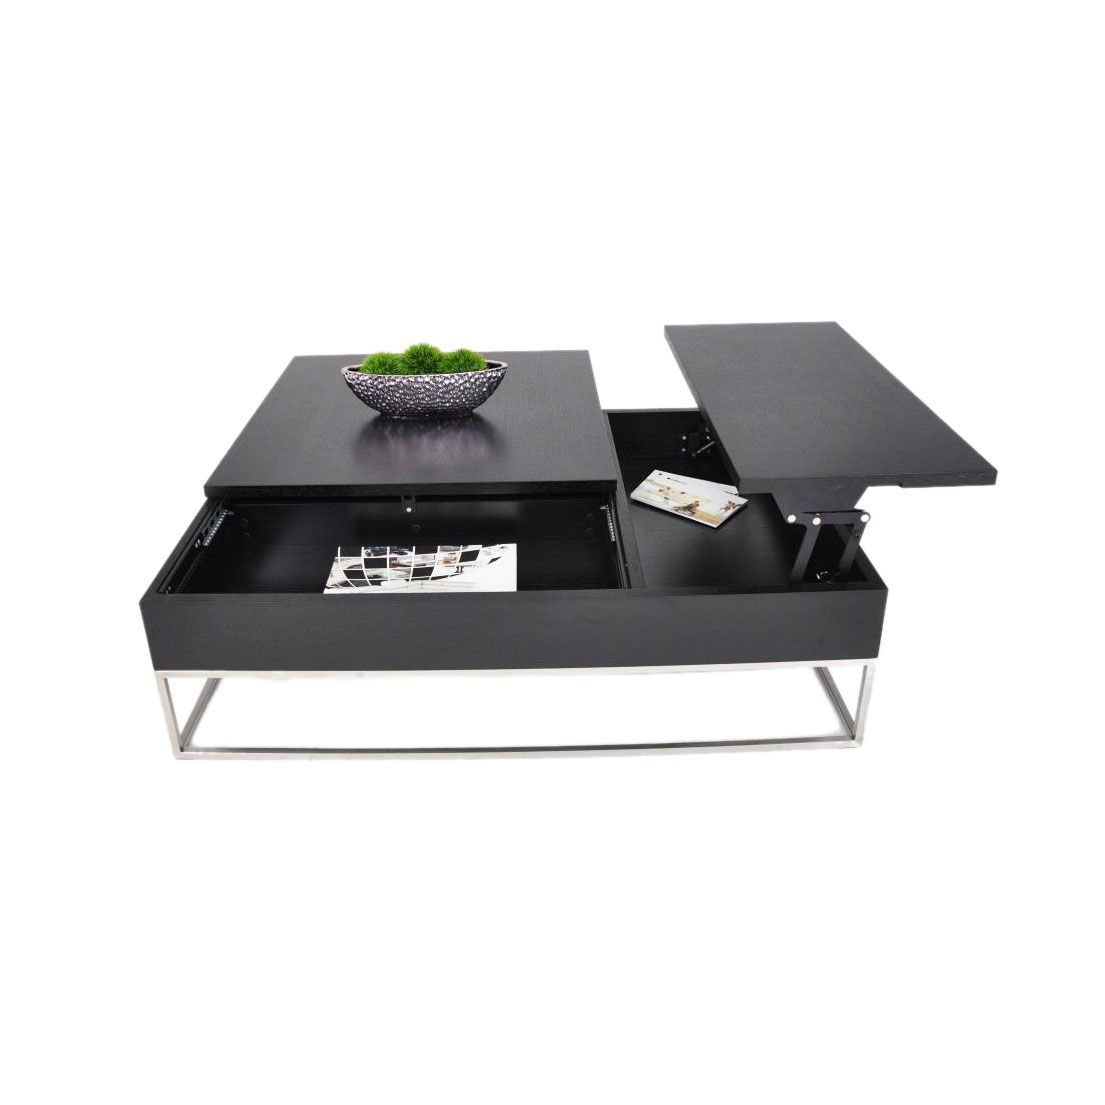 This Coffee Table Opens Up To Reveal Two Storage Spaces To Stash And Sort Your Day 39 S Work